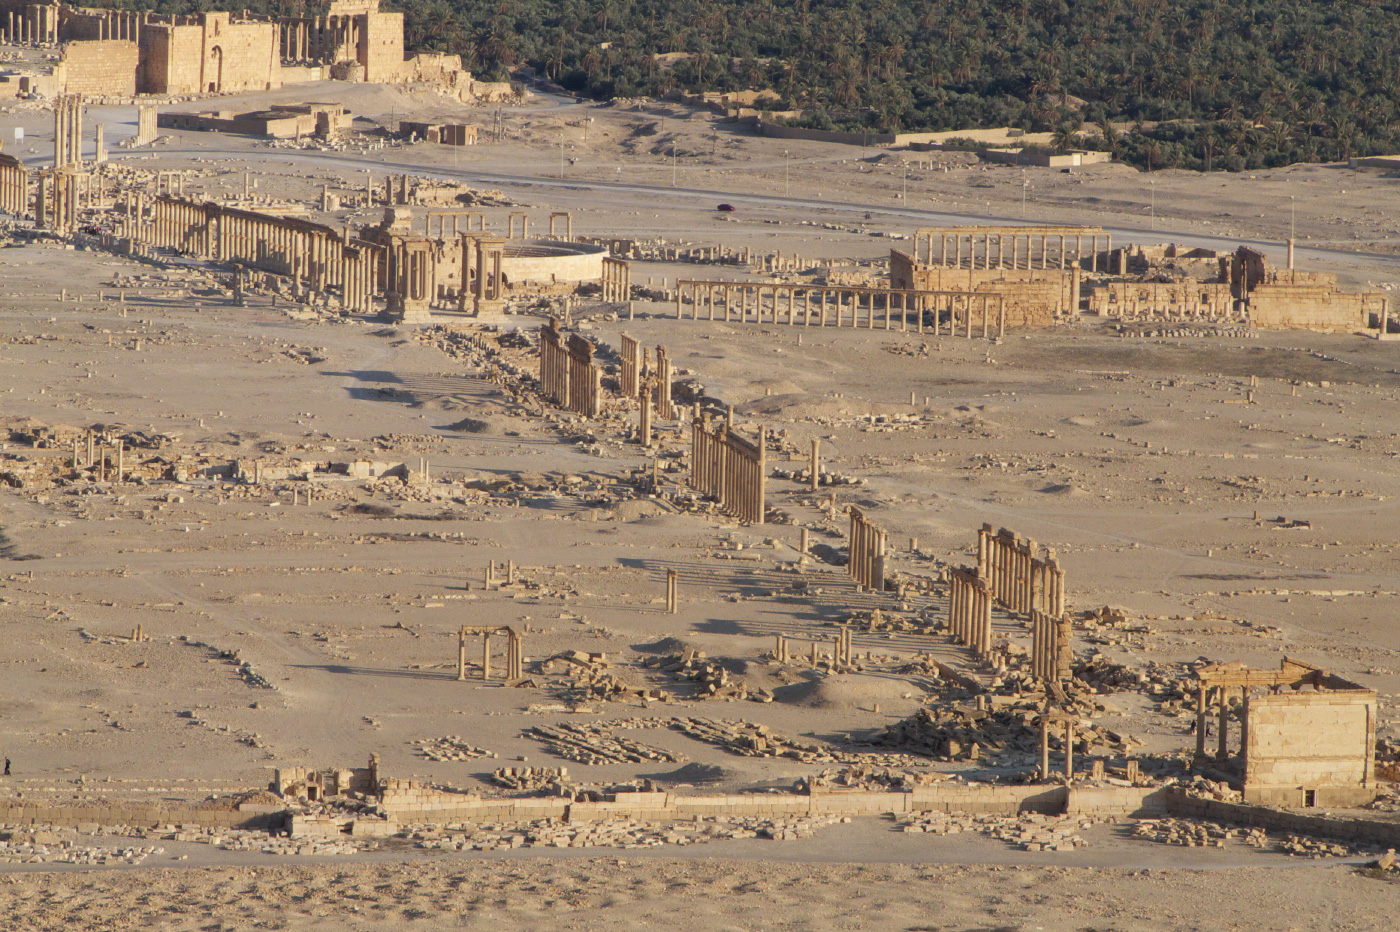 Monumental ruins show the city of Palmyra